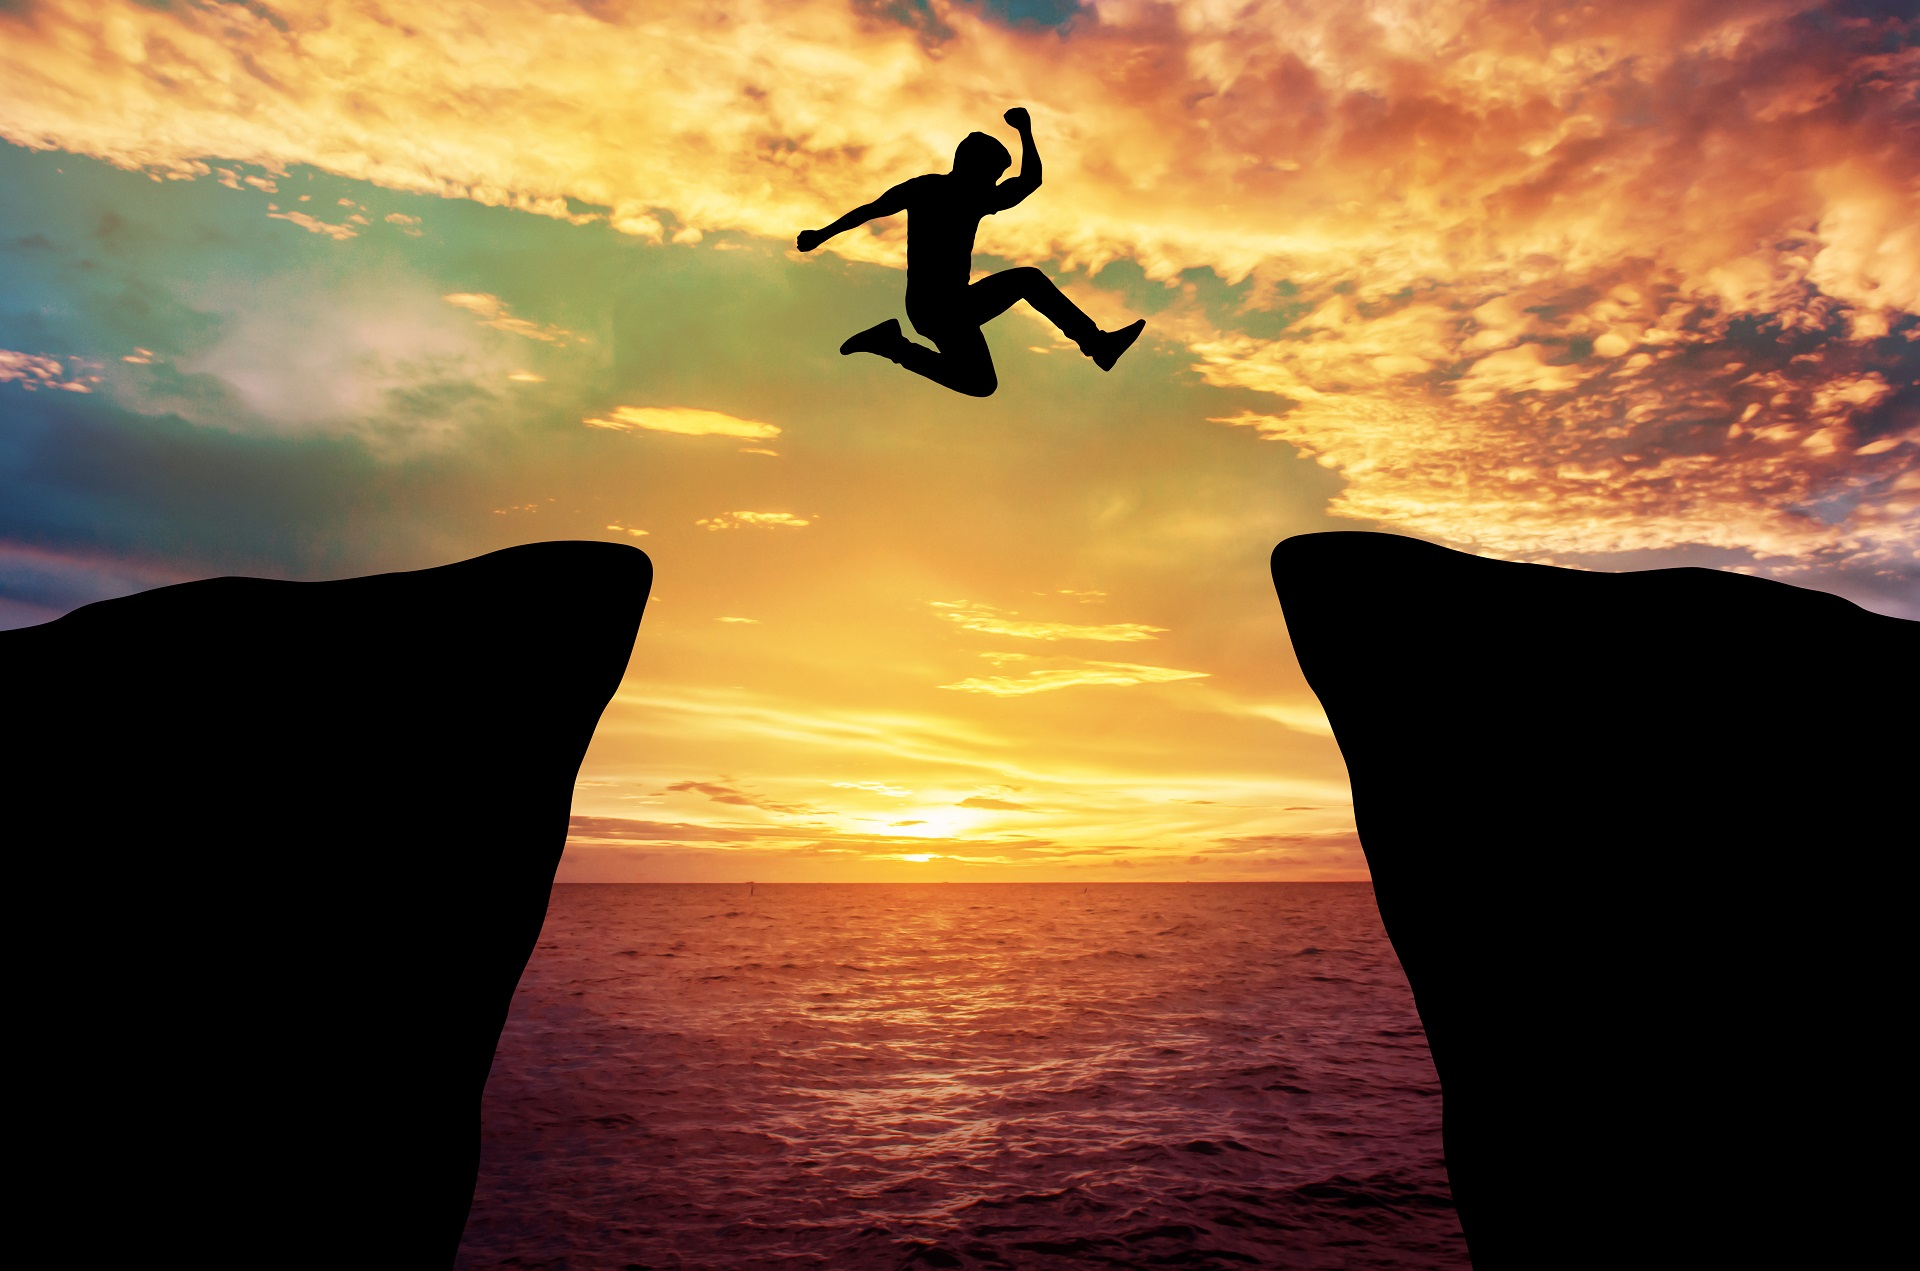 Thinking of taking the leap into business?